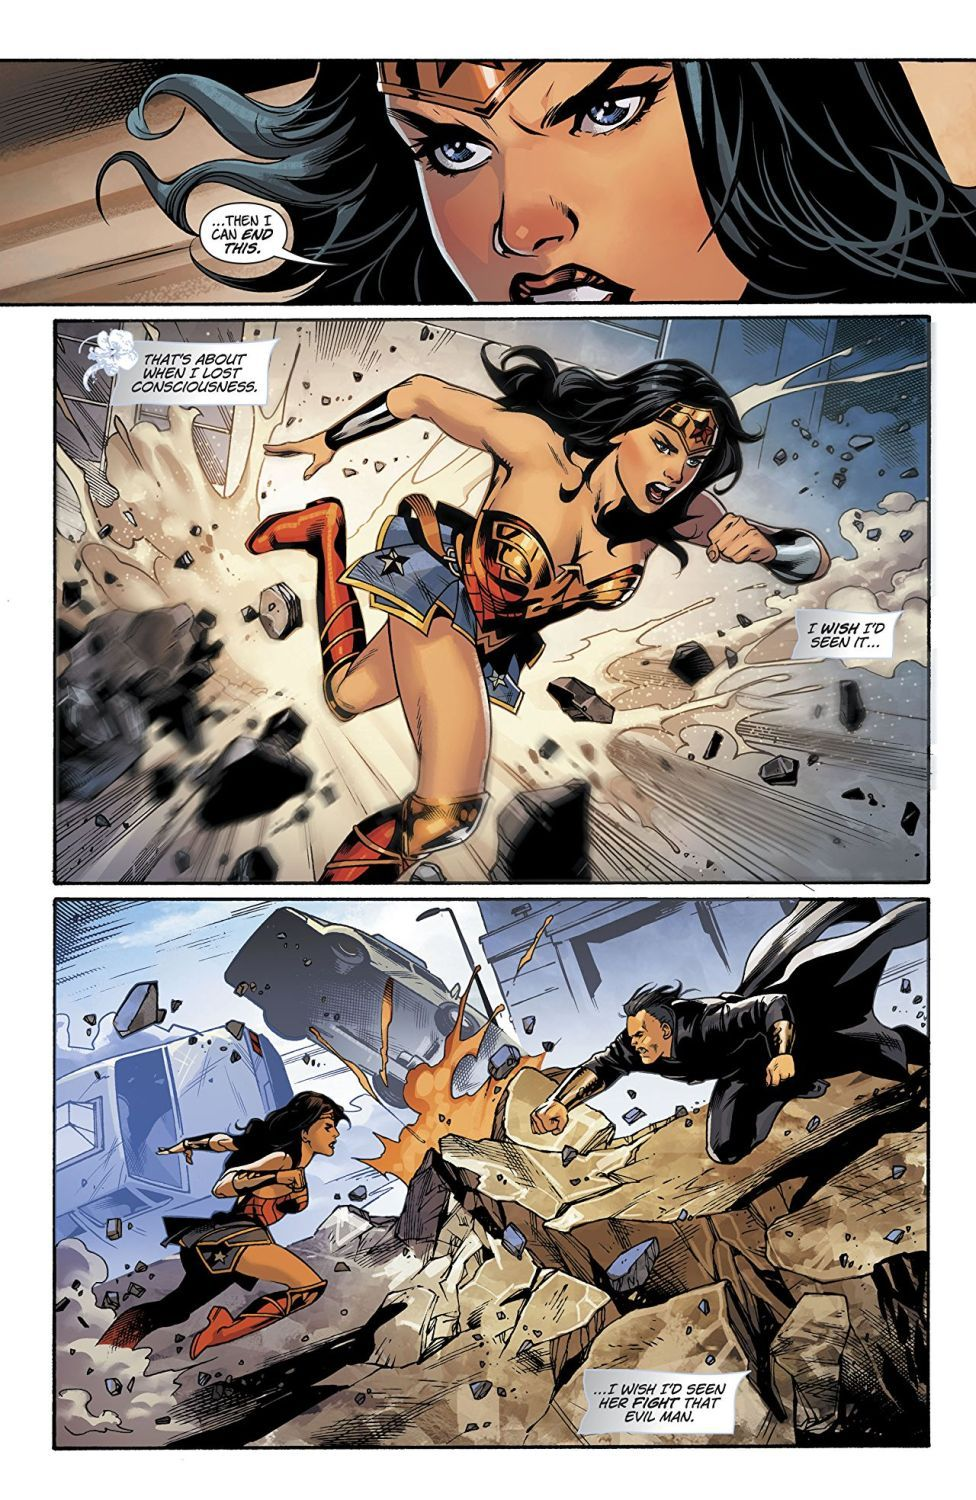 Wonder Woman Vol. 7: Amazons Attacked-5 - 7